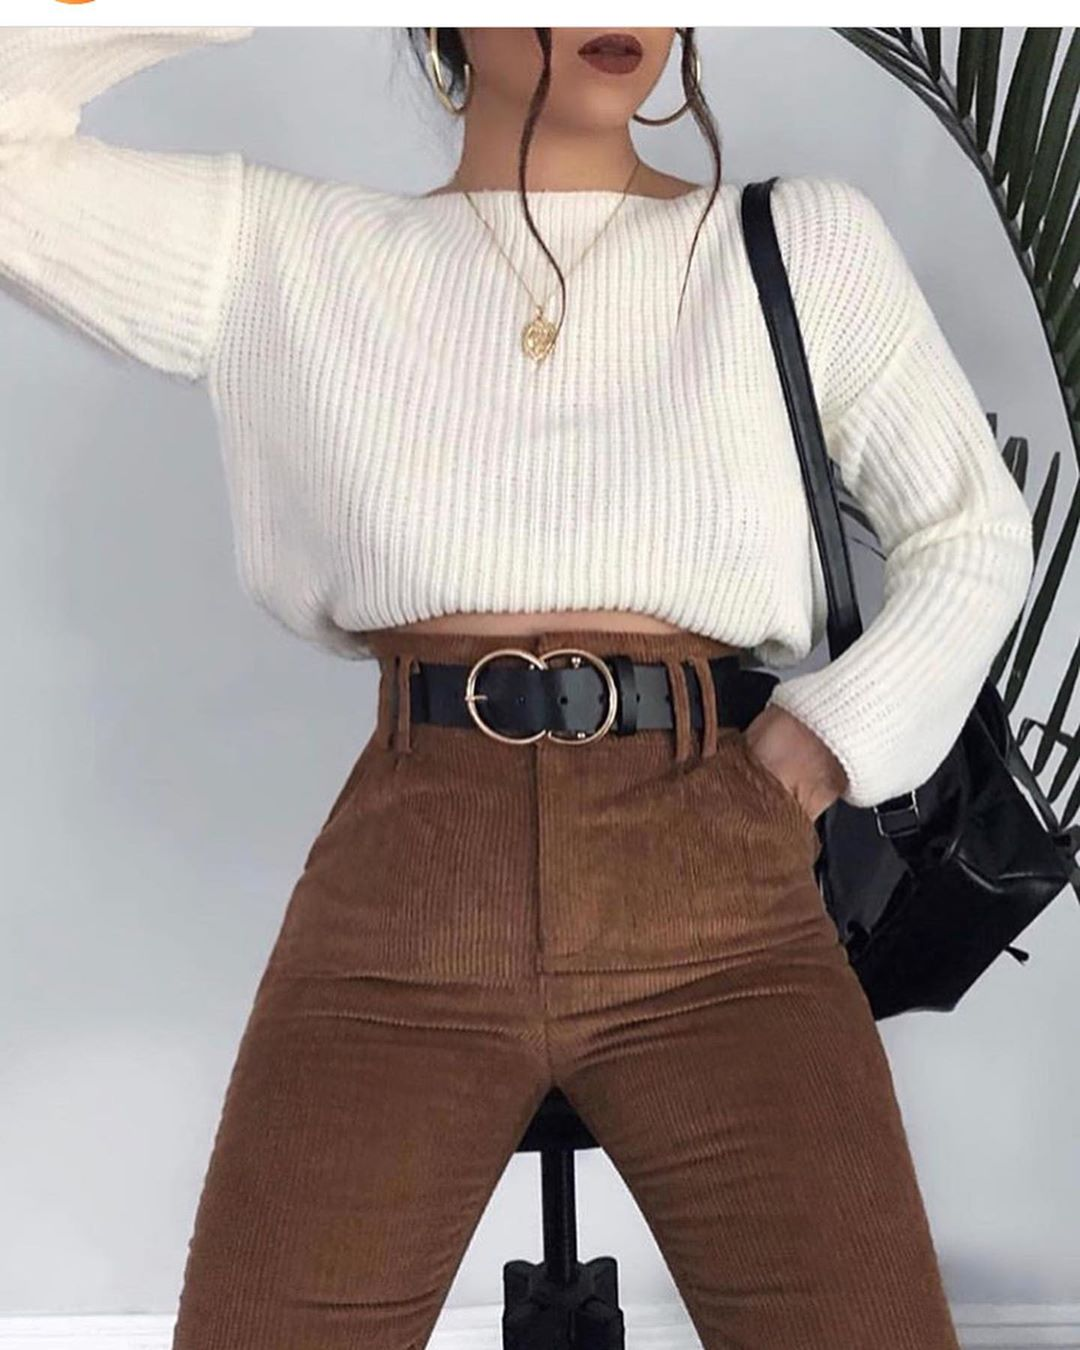 fashion, outfit, and brown image